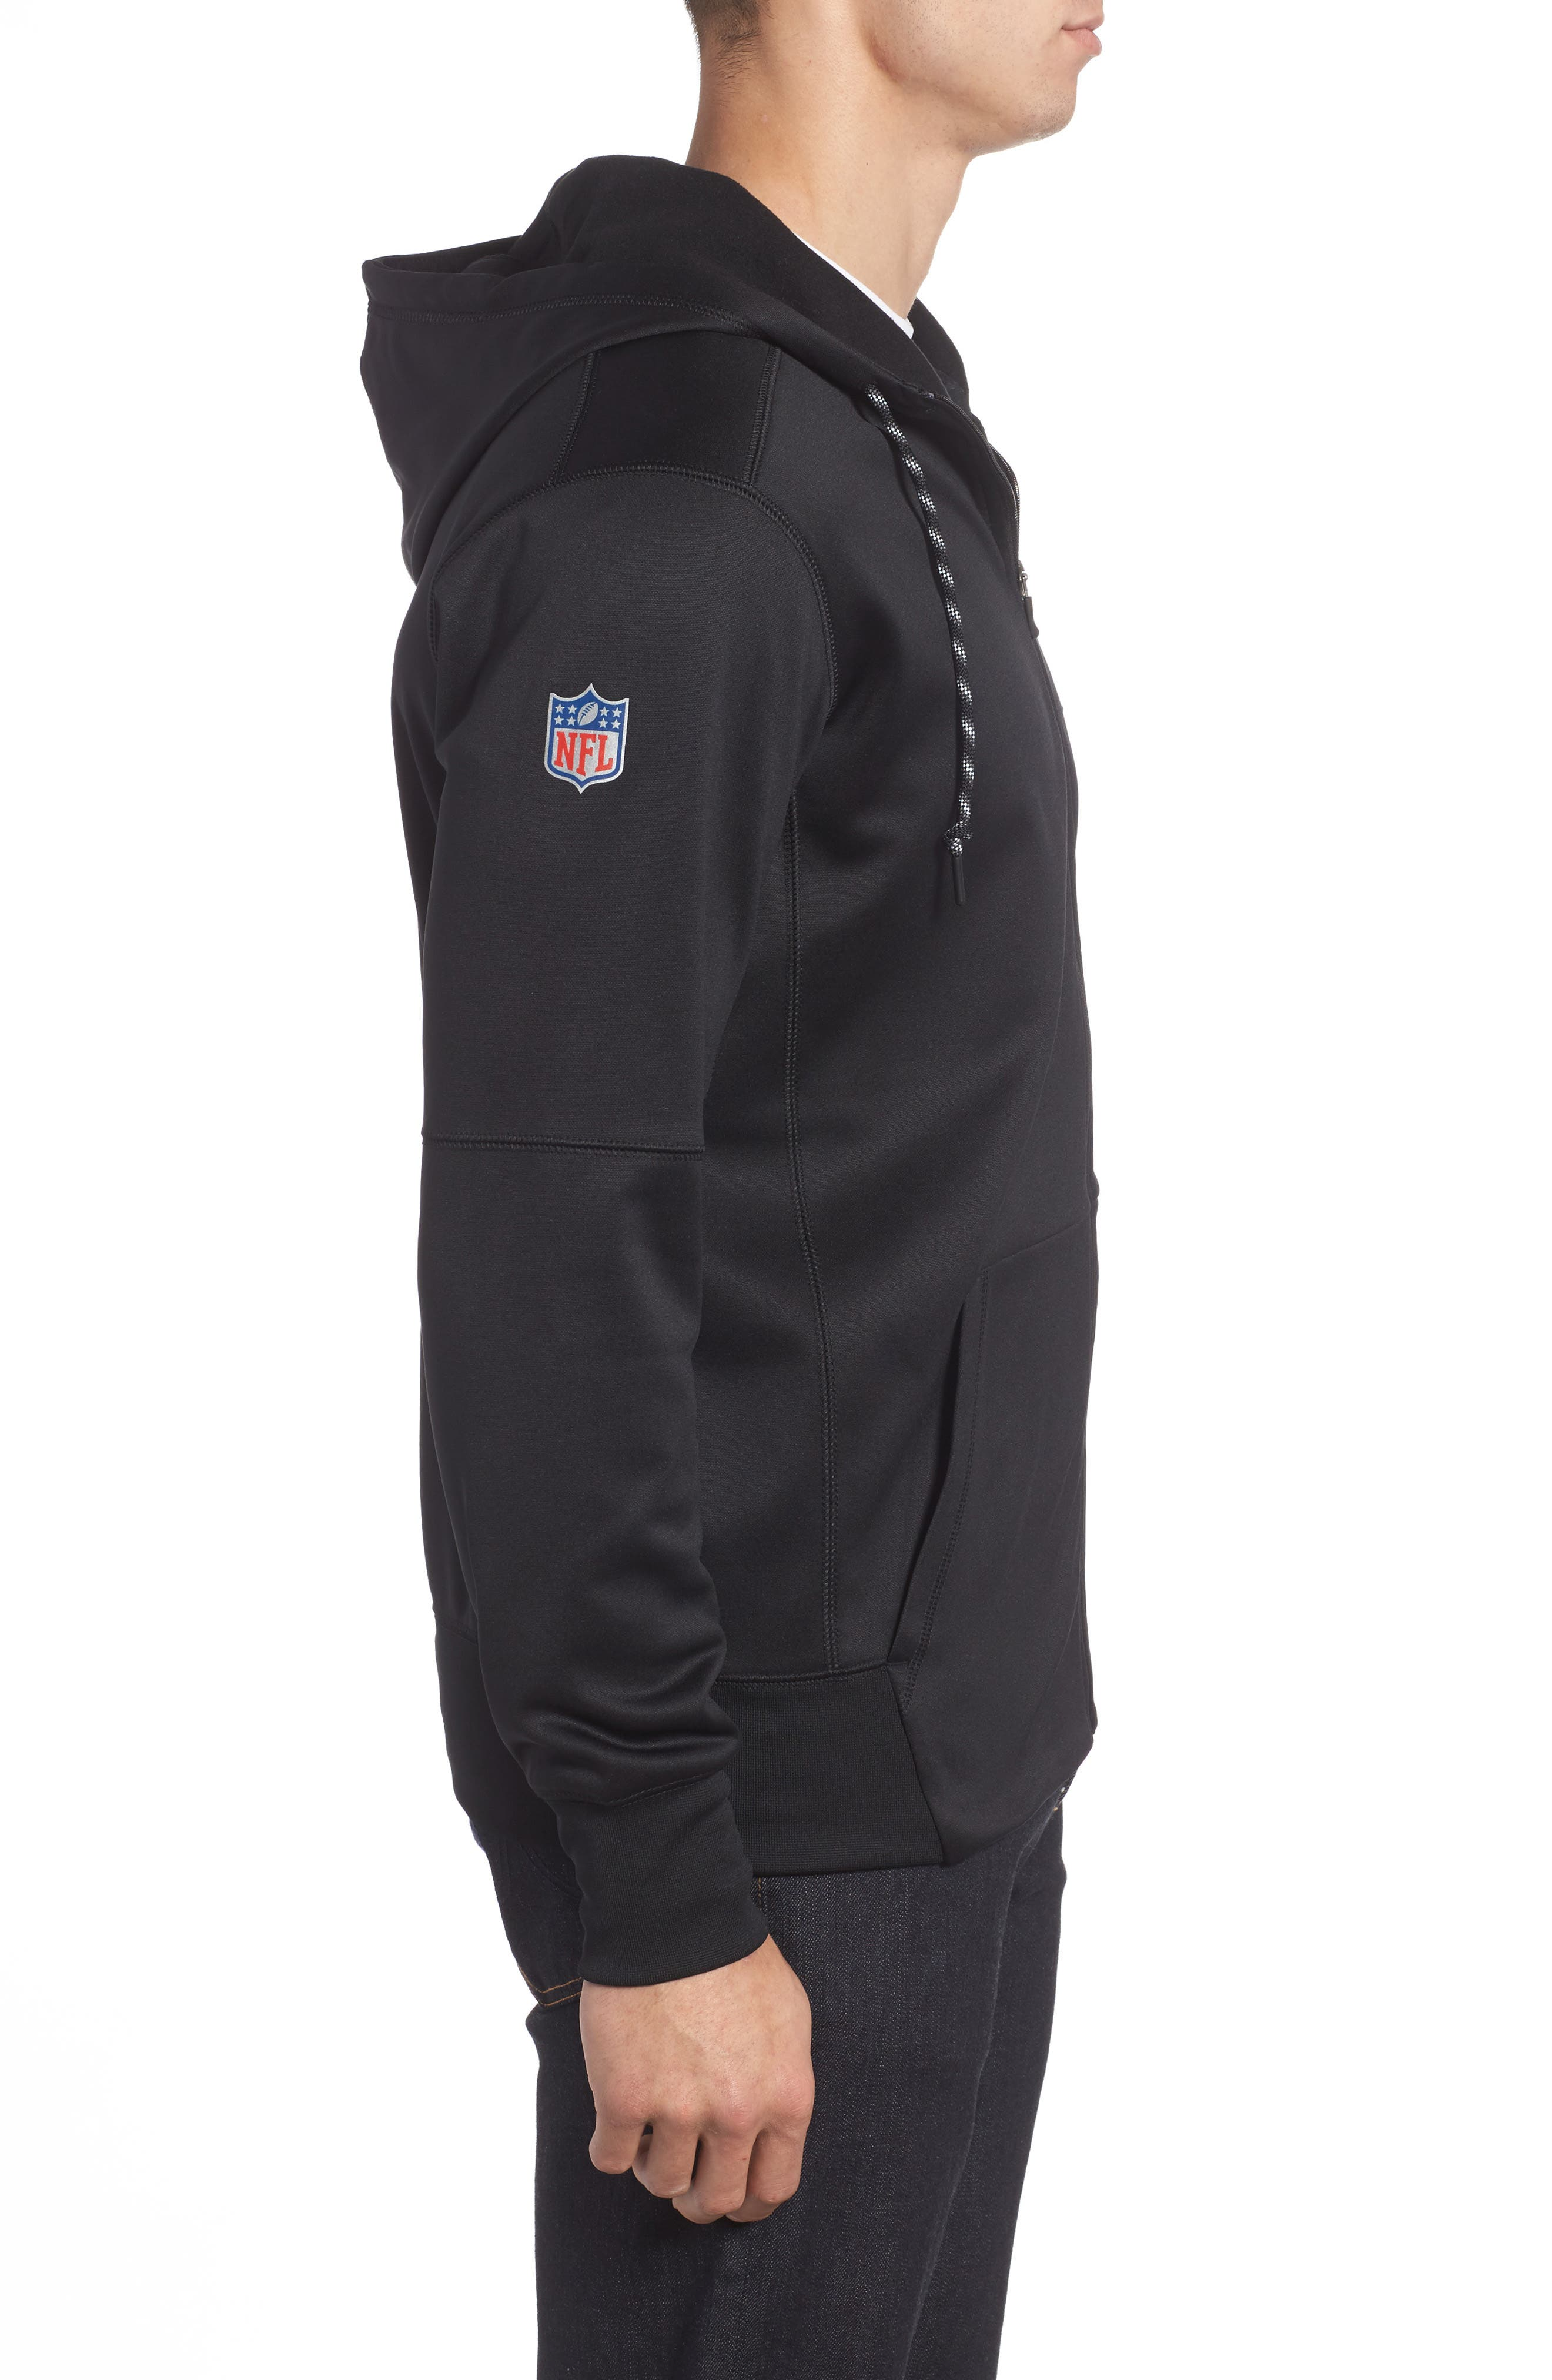 Therma-FIT NFL Graphic Zip Hoodie,                             Alternate thumbnail 3, color,                             010